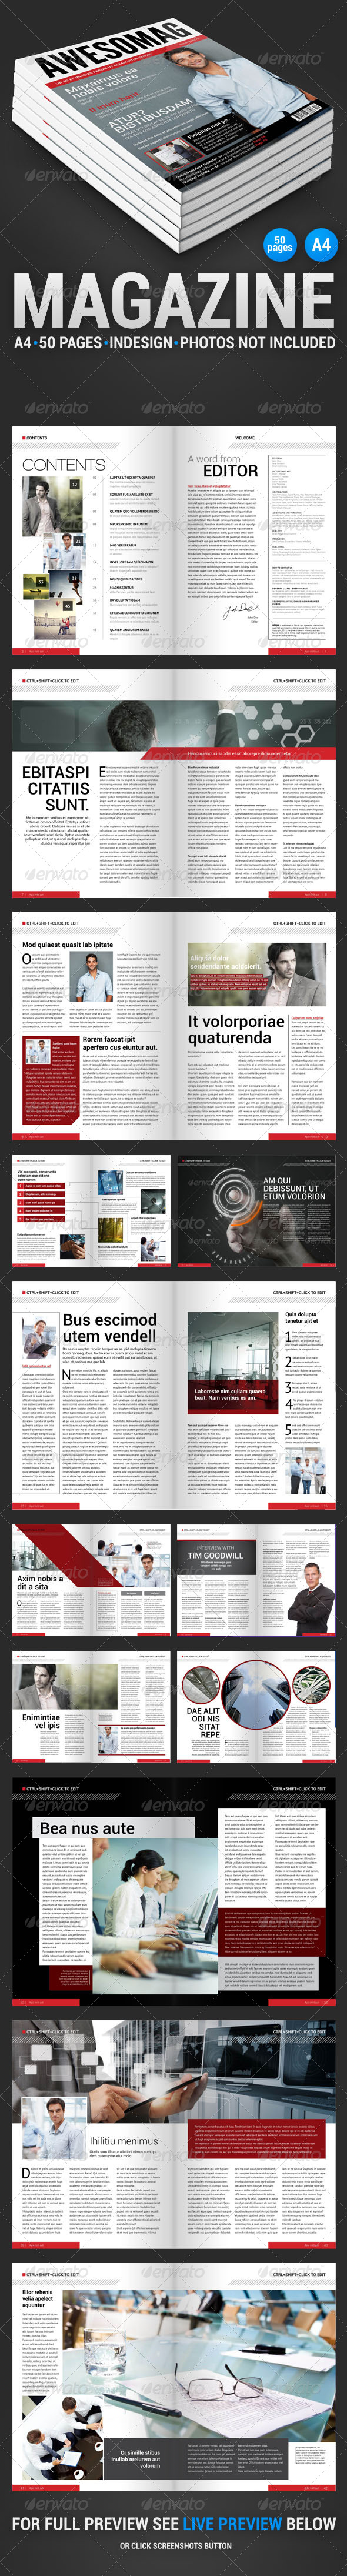 GraphicRiver AwesoMag 50 pages magazine 4299849